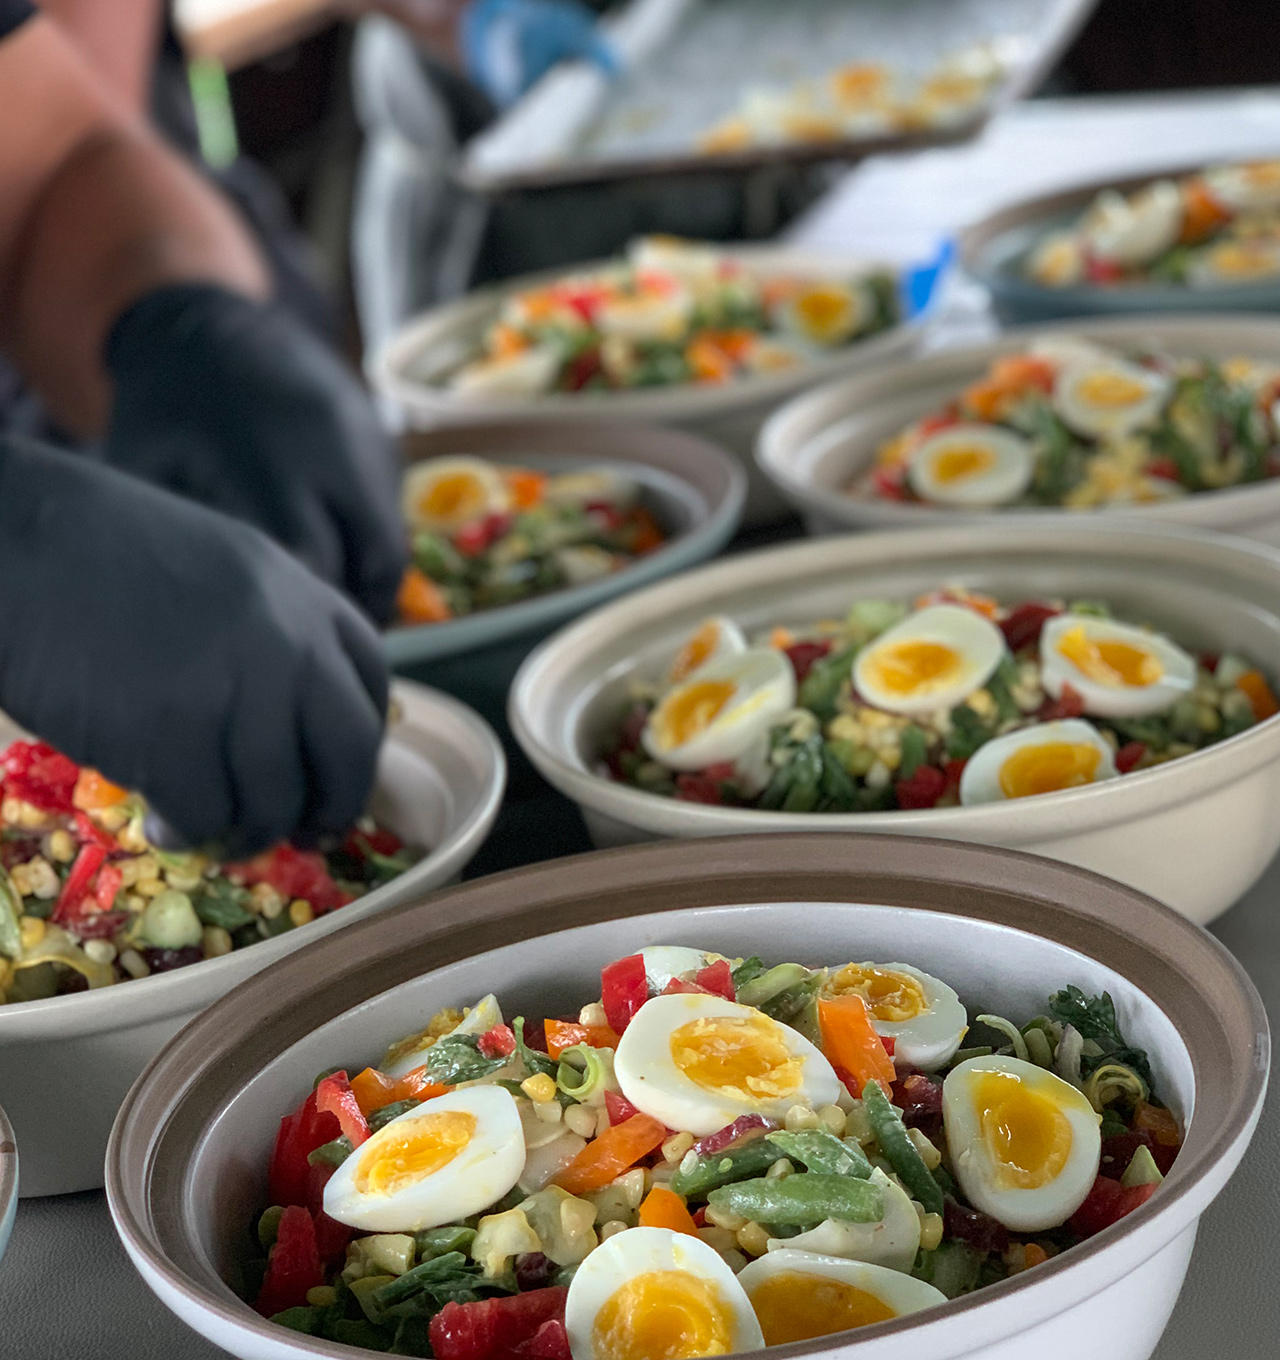 Salad for an event catered by Brazen Open Kitchen